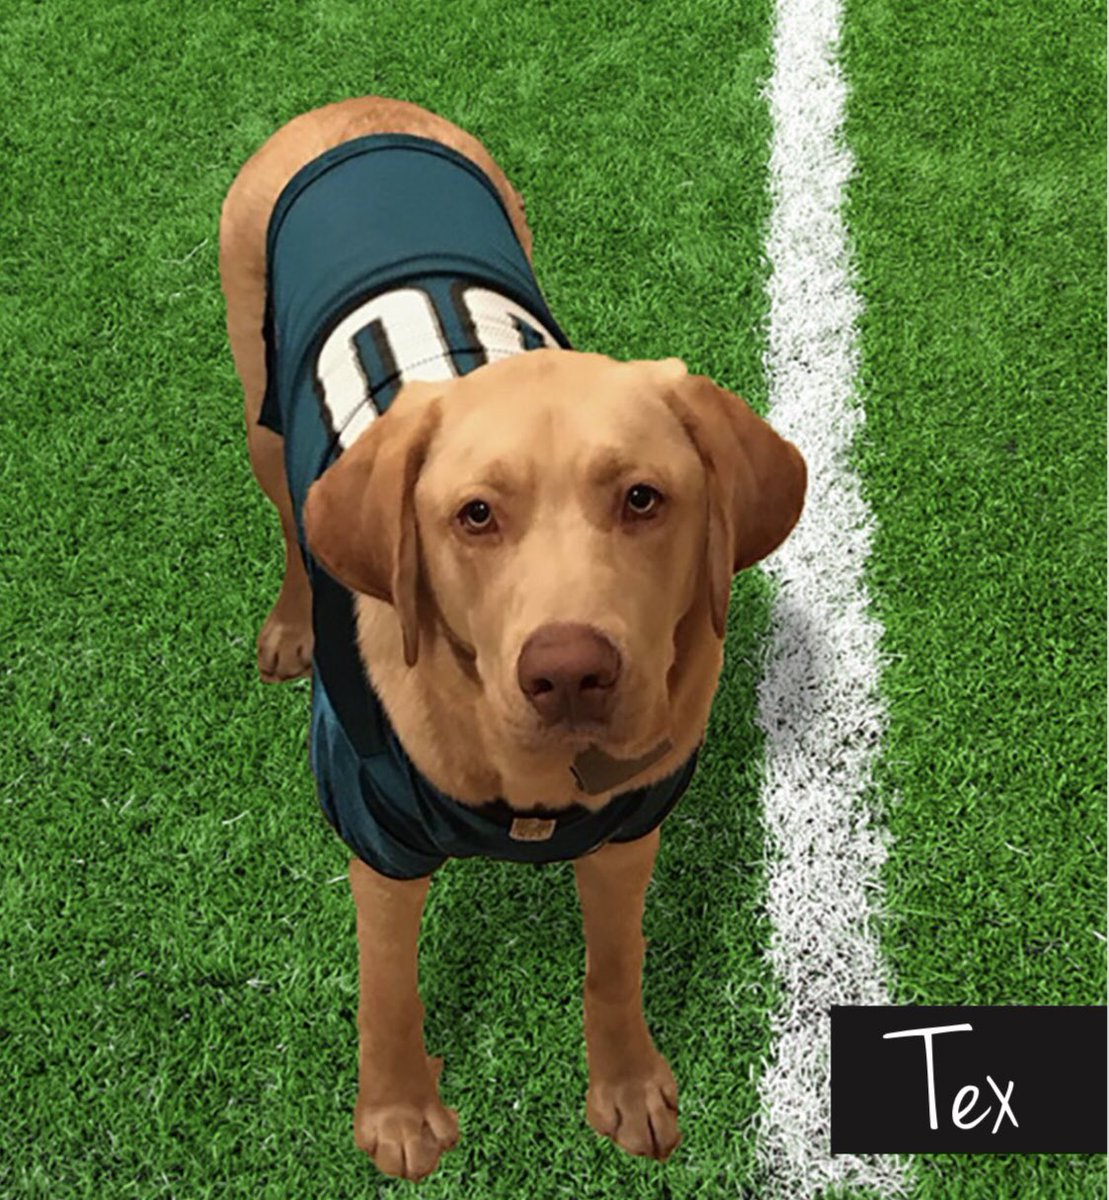 FLY EAGLES FLY! We are proud to care for Coach Doug Pederson's fur-child Tex! Best of luck Sunday! #flyeaglesfly  #LIIIherewecome #GOBIRDS #fox29goodday <br>http://pic.twitter.com/NE5qyNFTBy